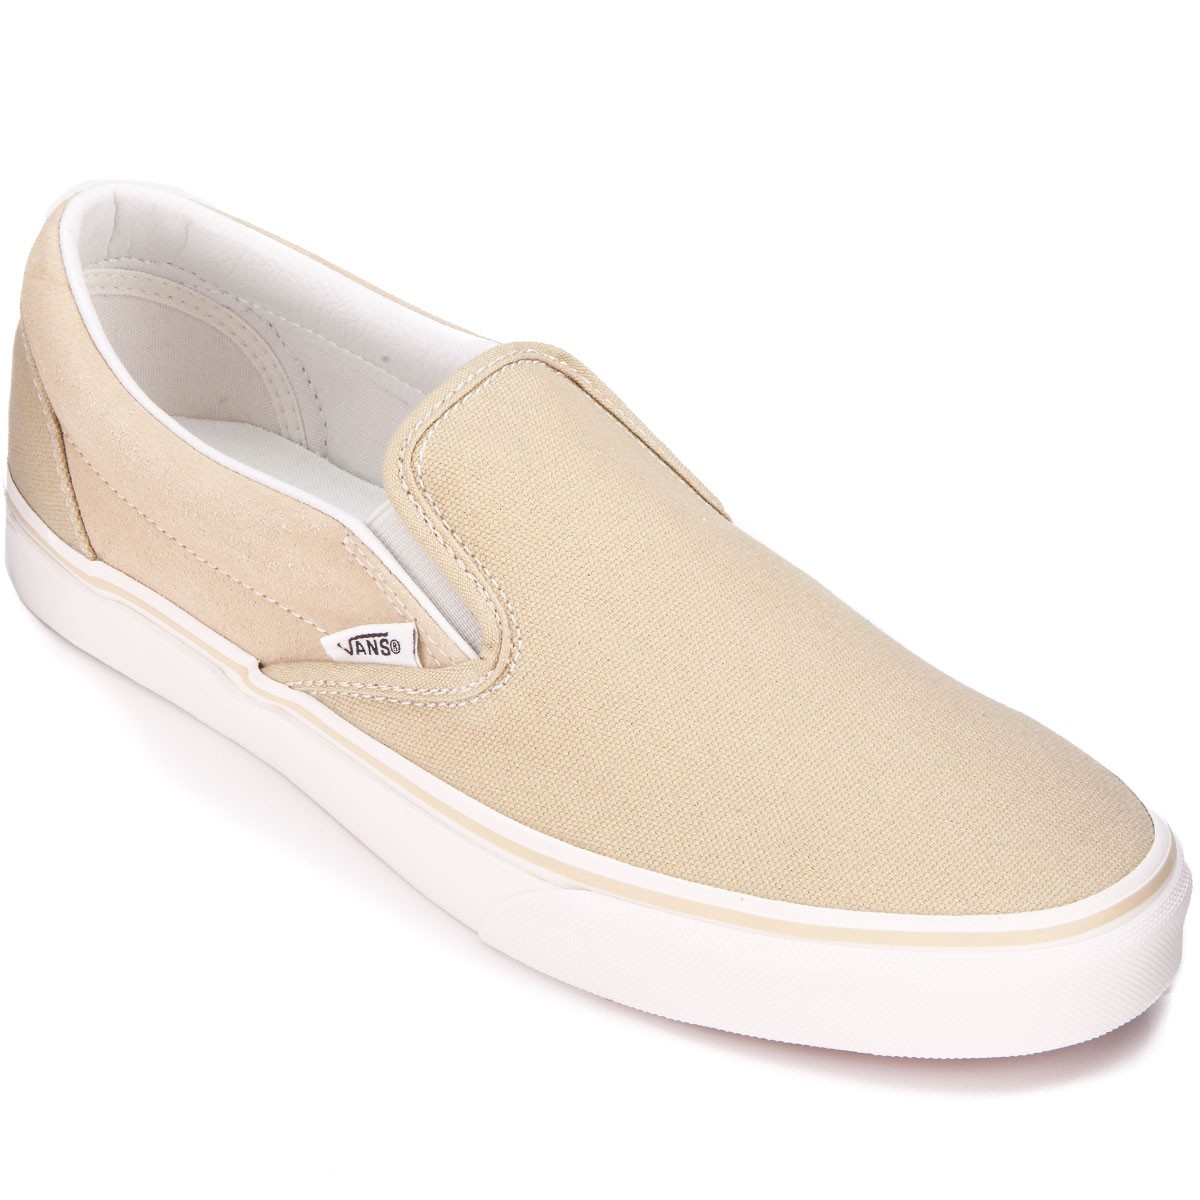 Vans Classic Slip-On Shoes - Pale Khaki - 6.0